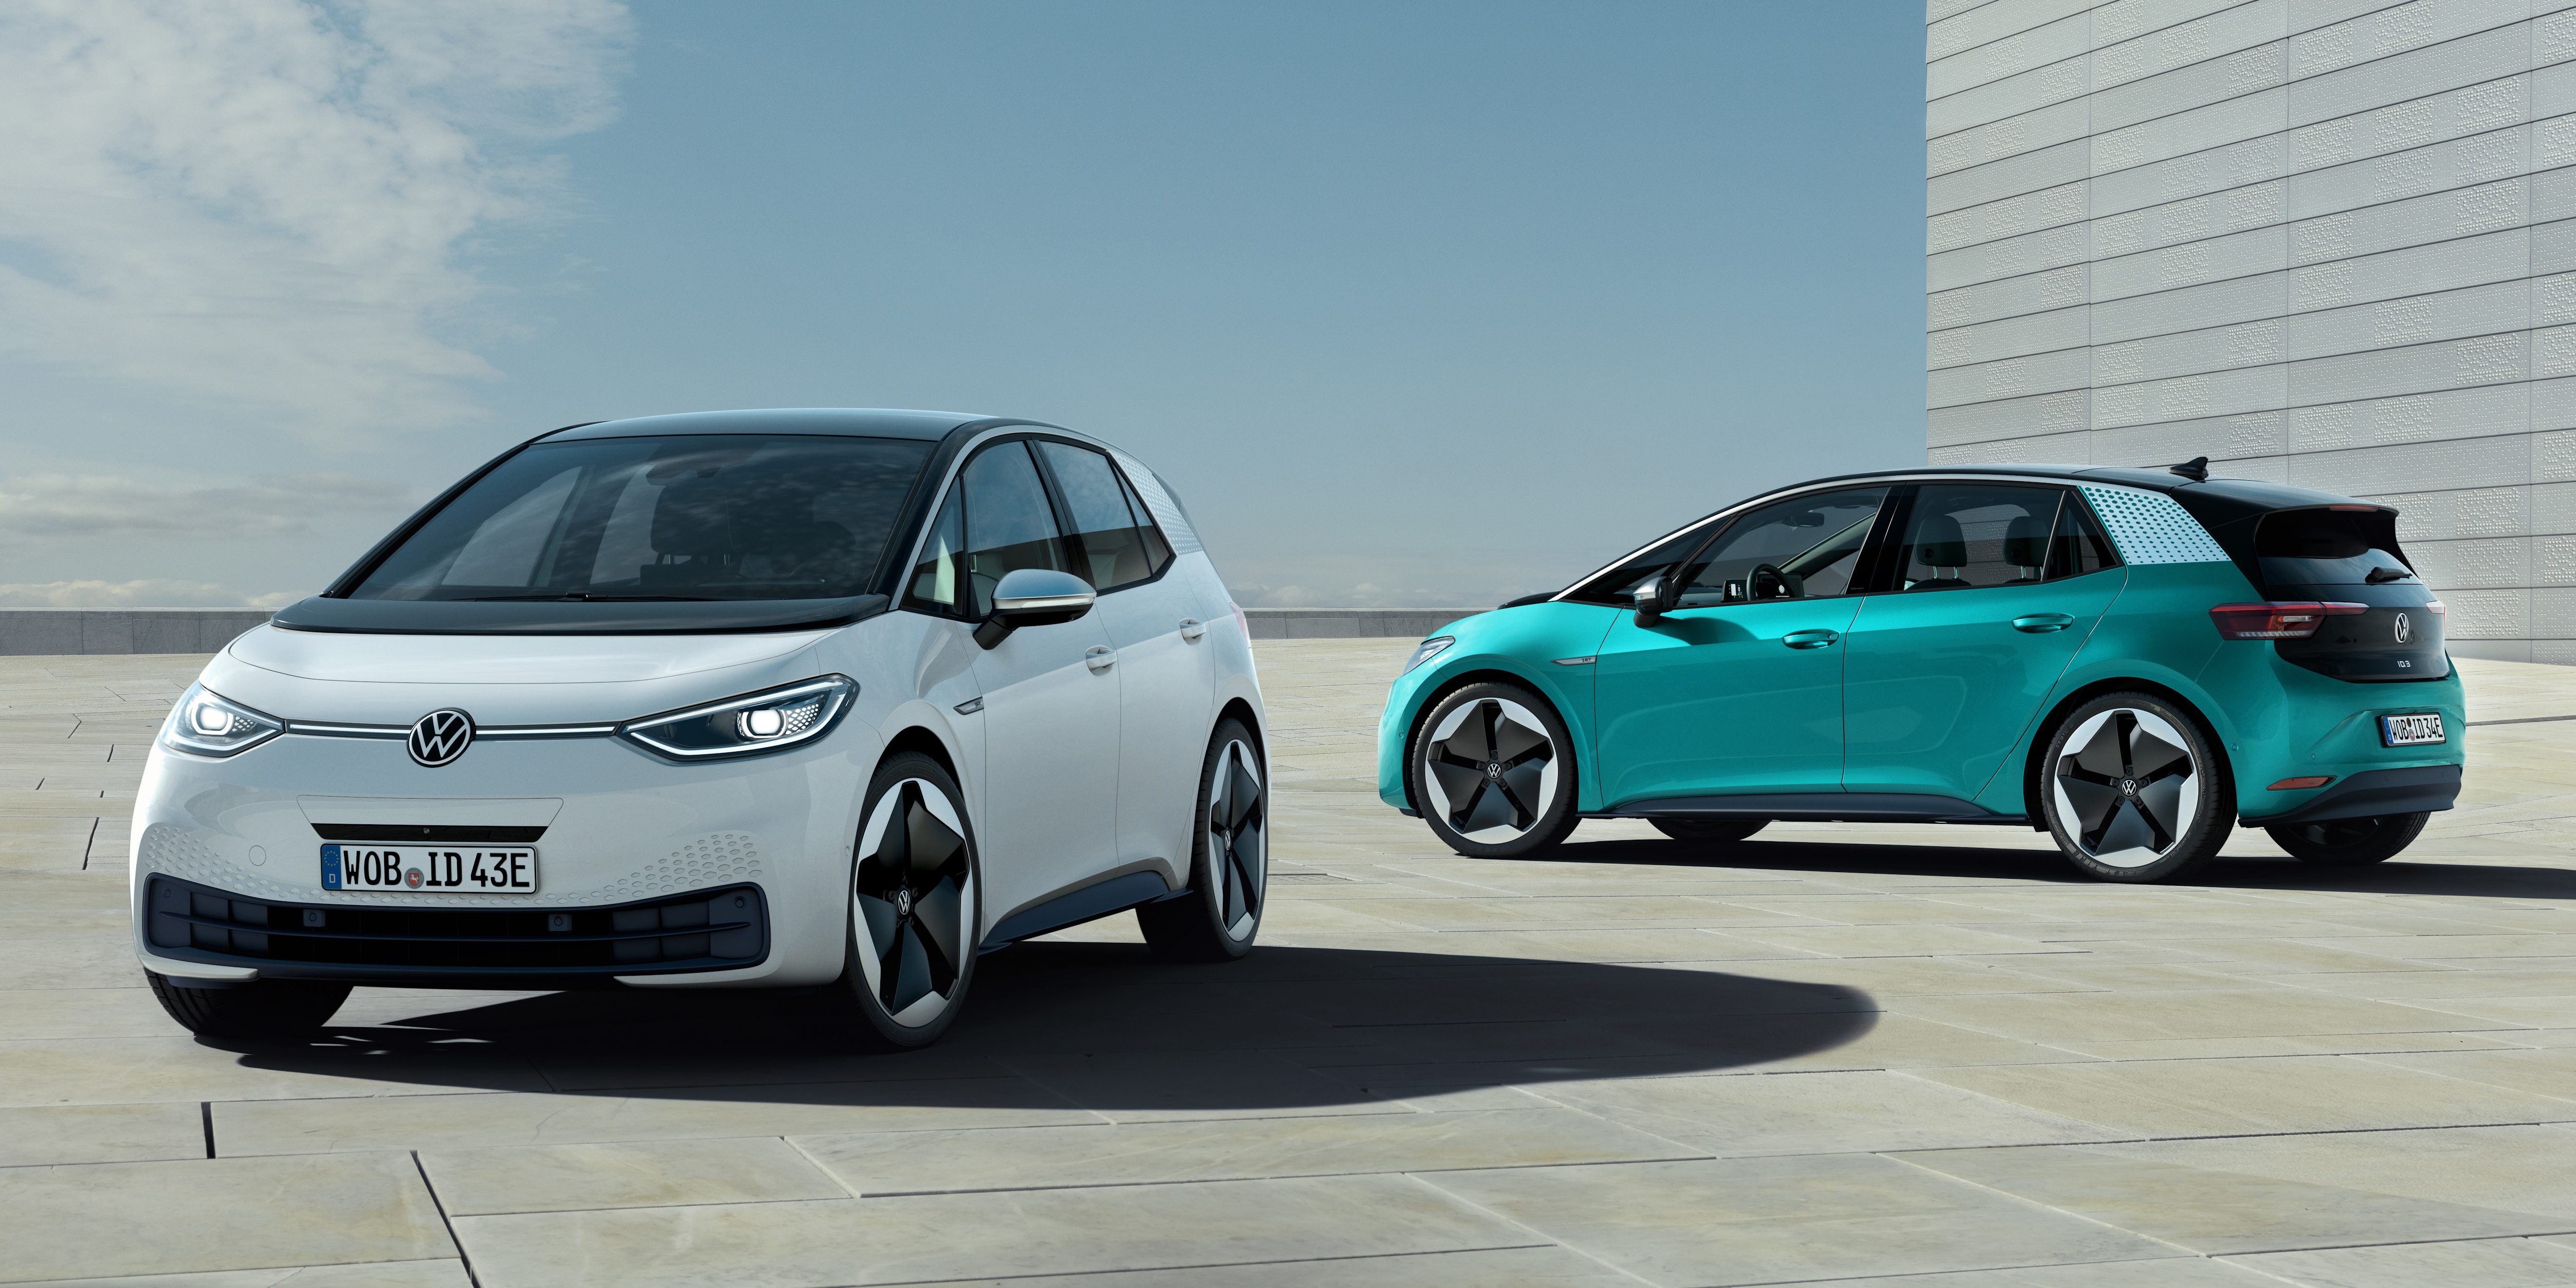 Vw Says It Will Drop 30 000 Id 3 Electric Cars At Once Will Be Cheaper Than Gas Cars Electrek